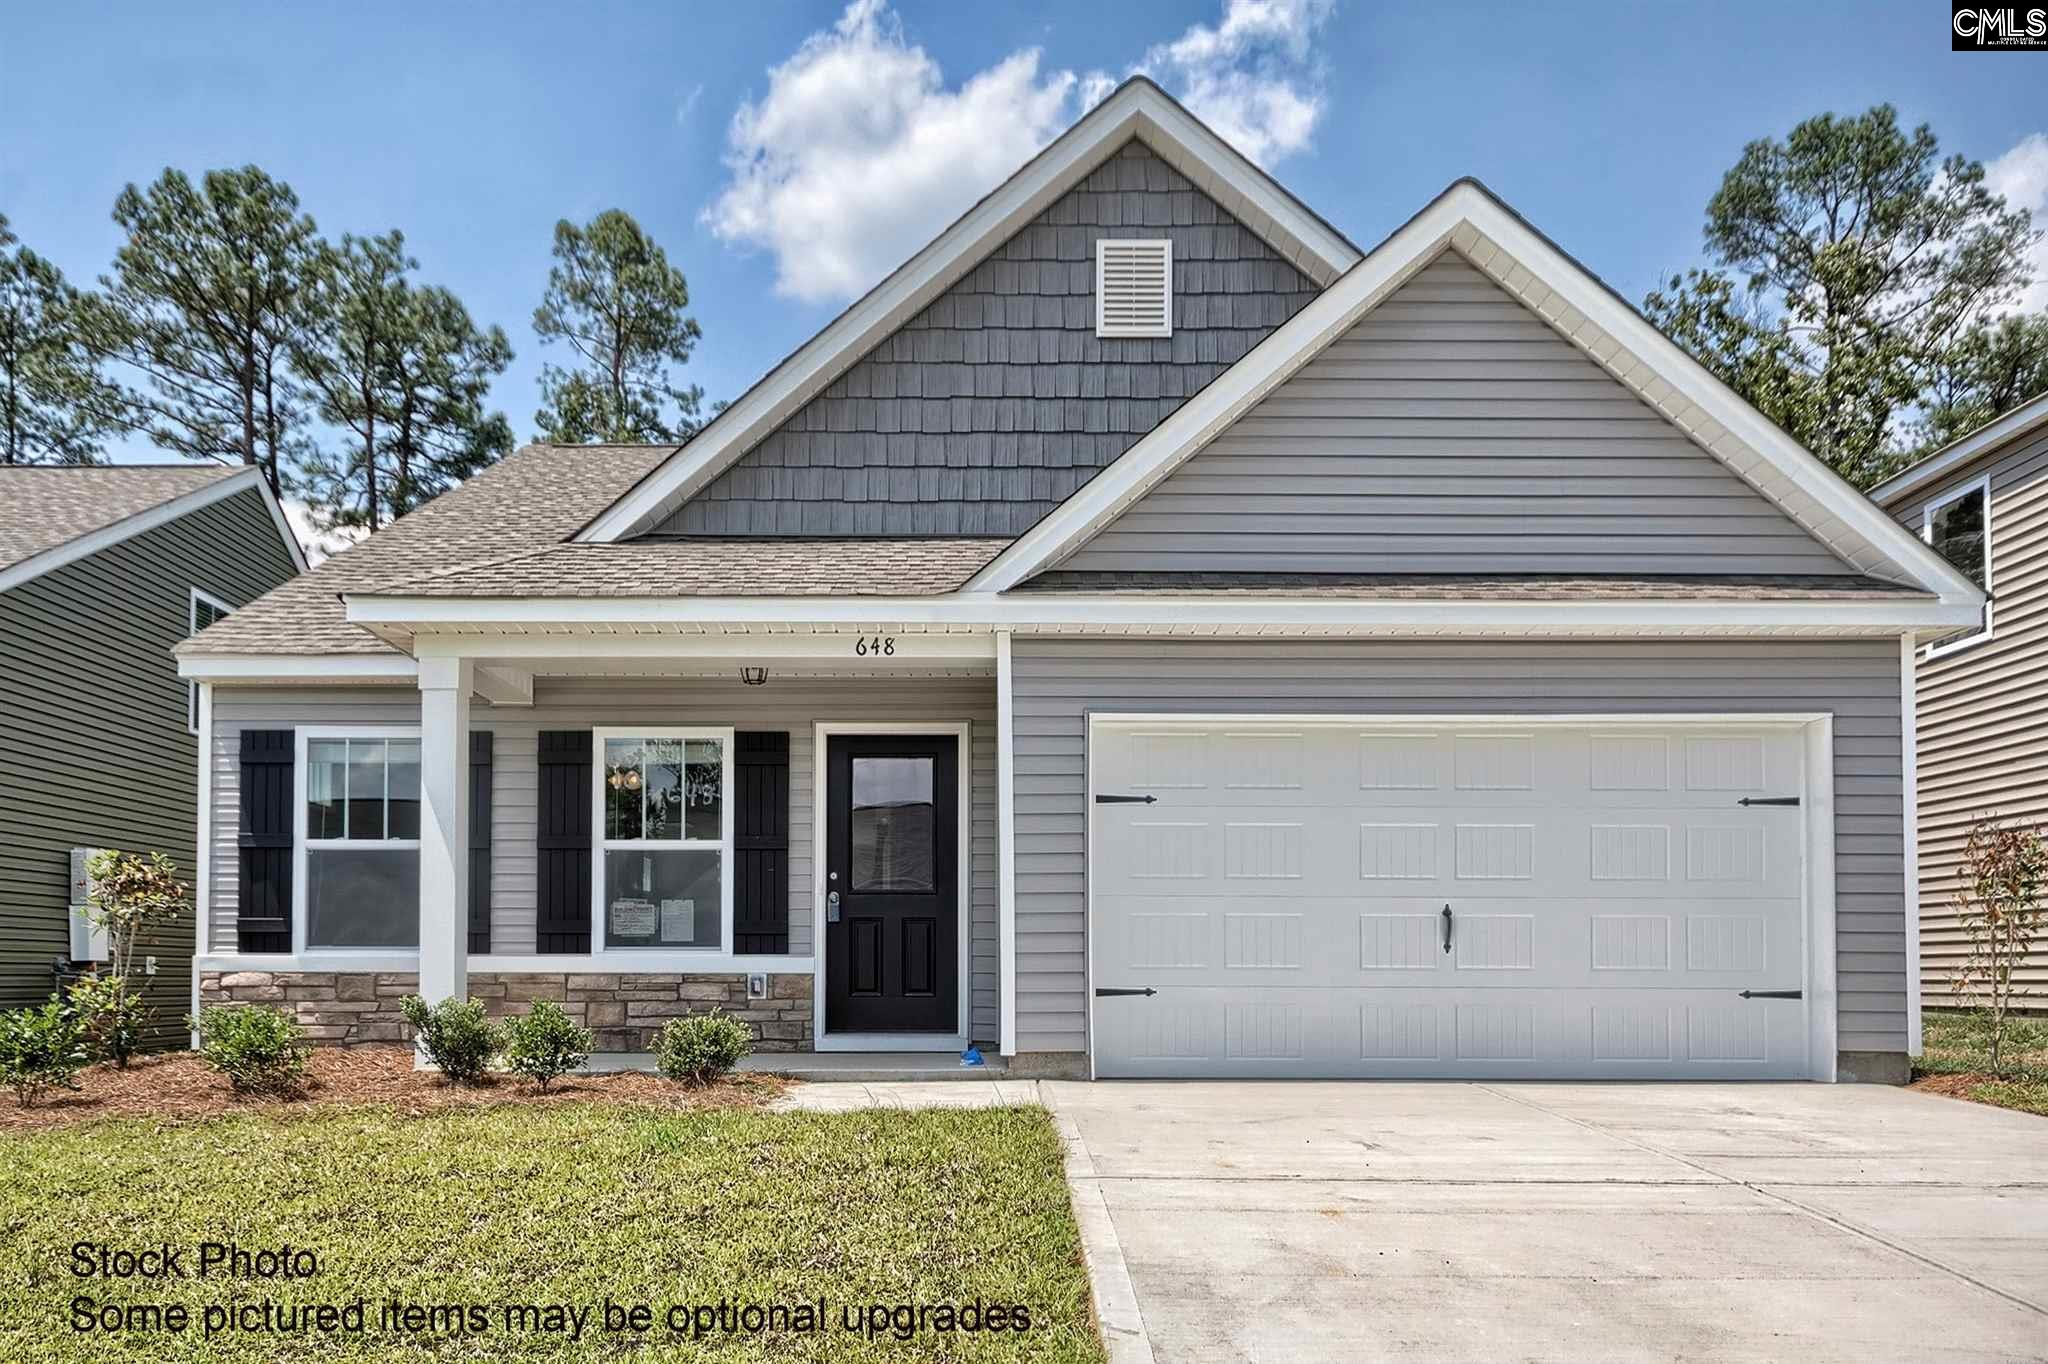 522 Lawndale Gaston, SC 29053